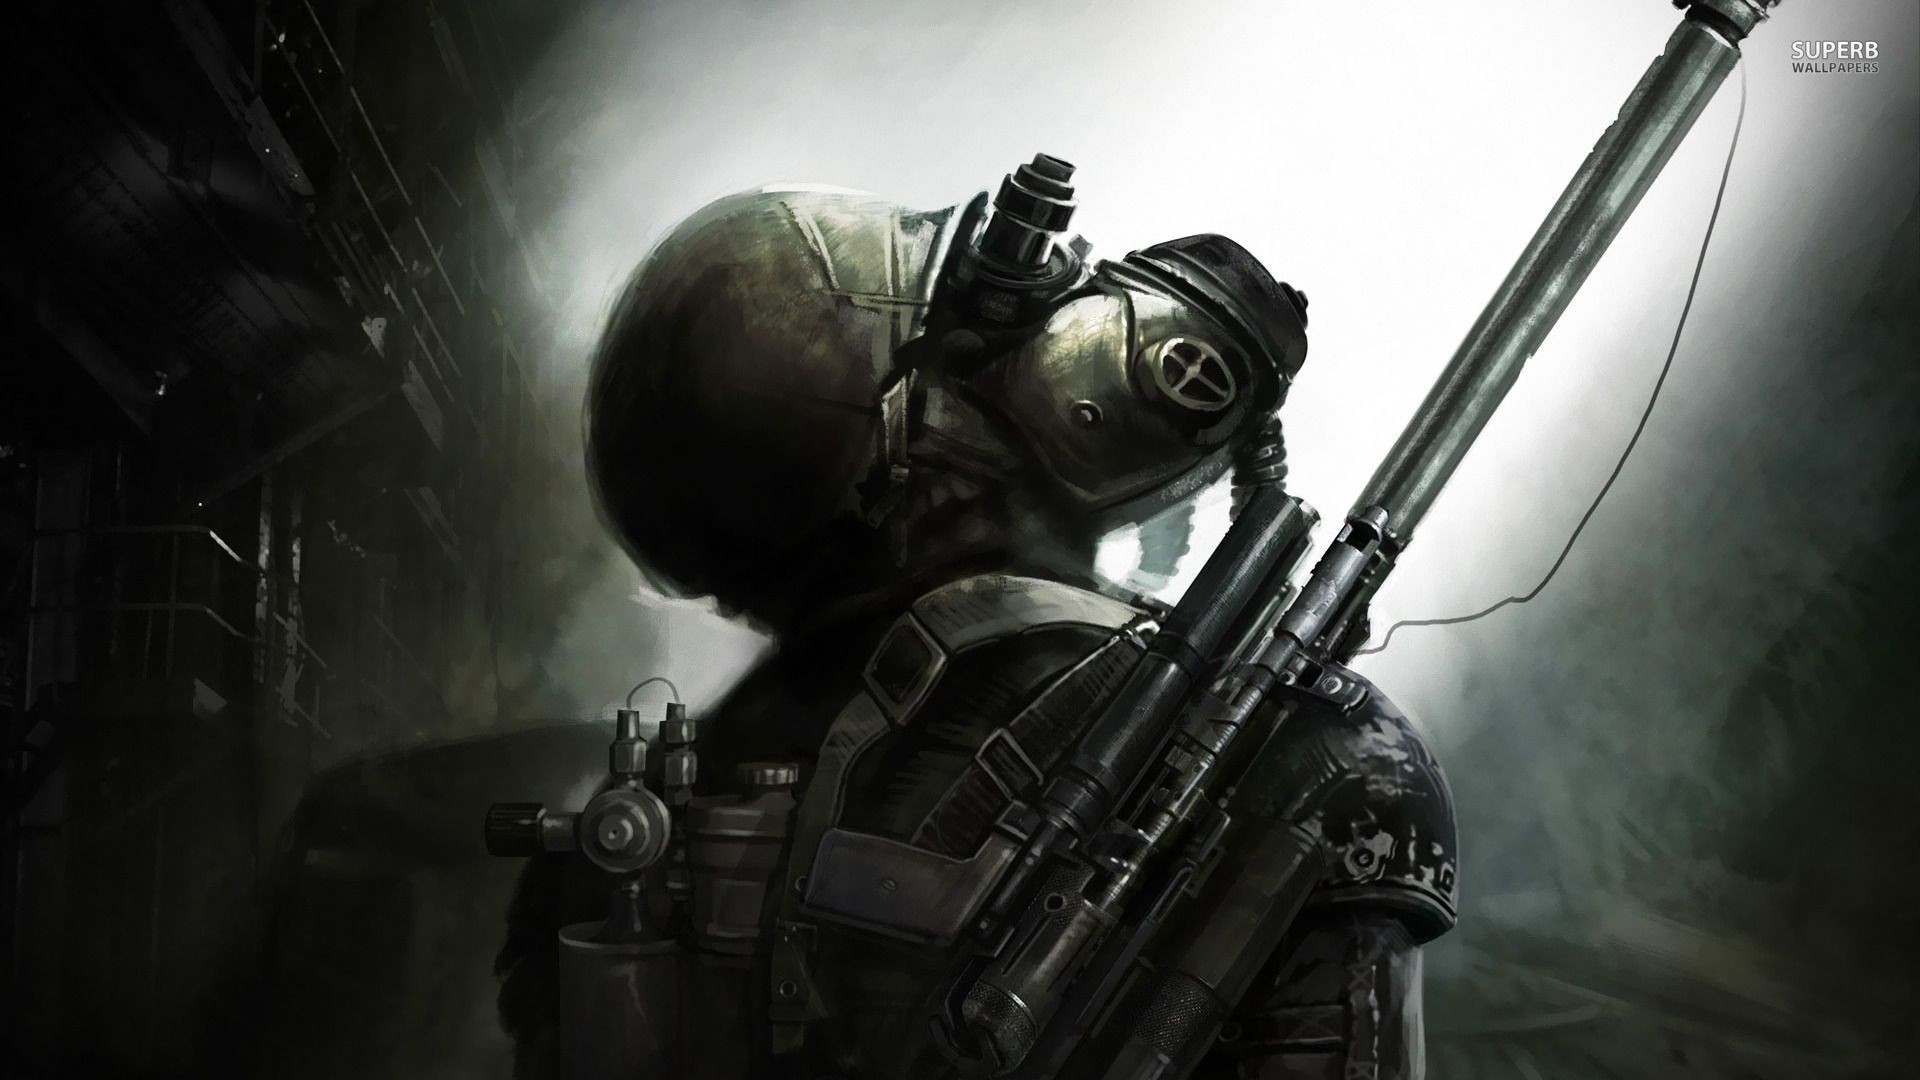 Gas Mask Wallpaper For Iphone Metro 2033 Wallpaper Iphone 72 Images